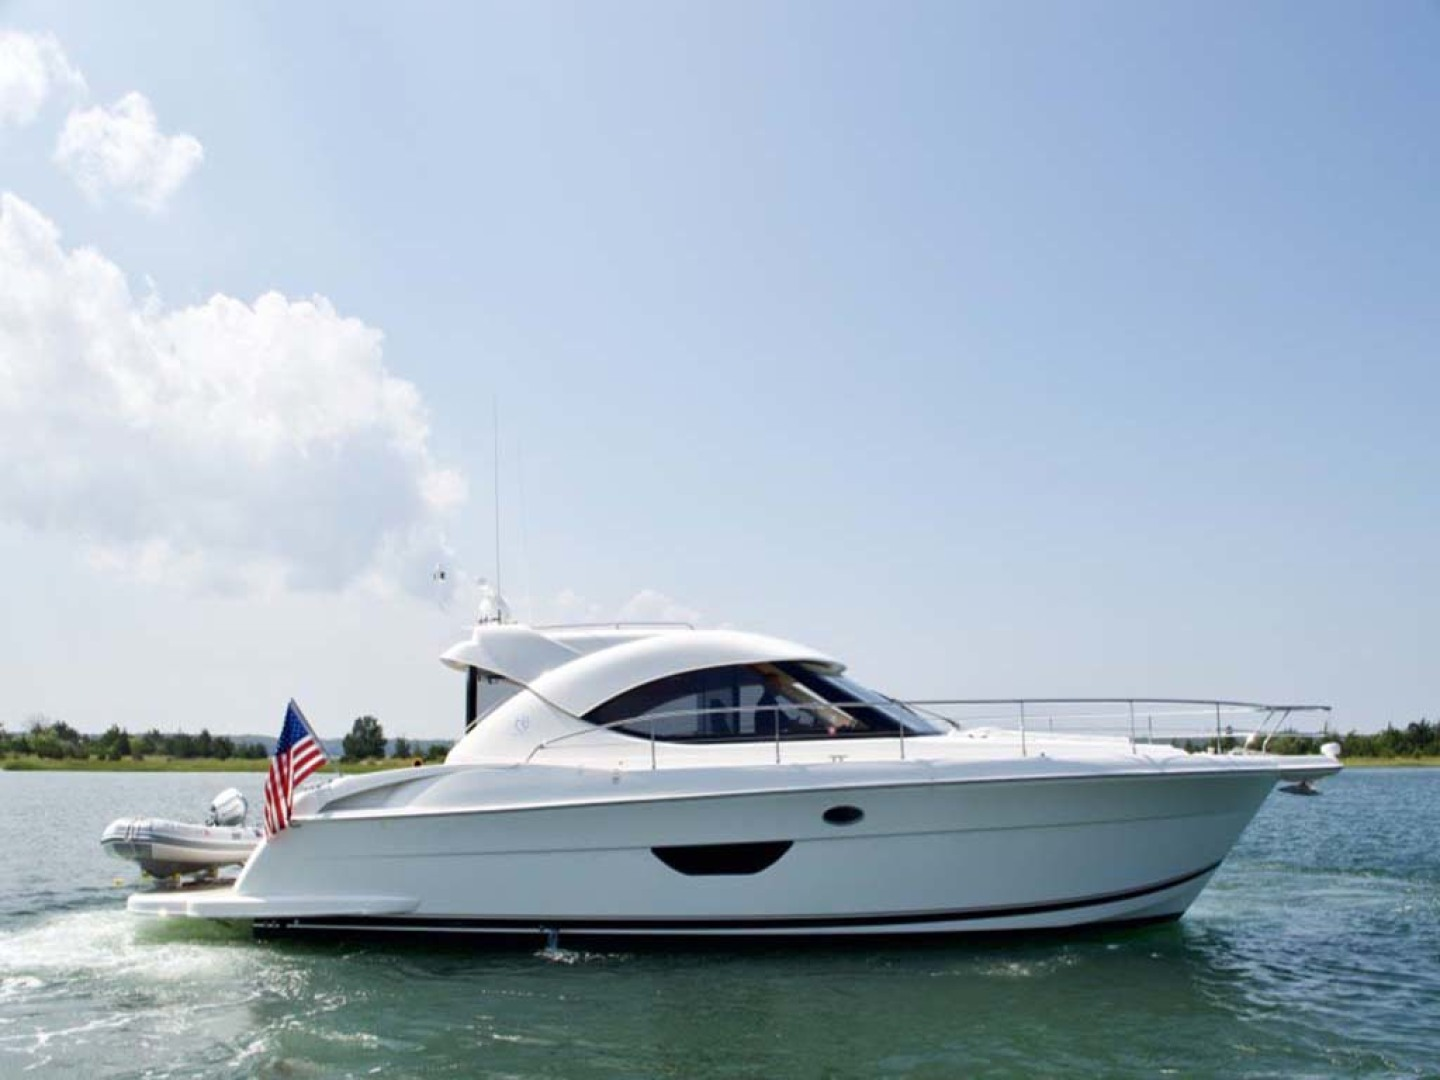 Riviera-4400 Sport Yacht 2009-Soul Mates Long Island-United States-44 Riviera 2009 Starboard Profile-1062525 | Thumbnail